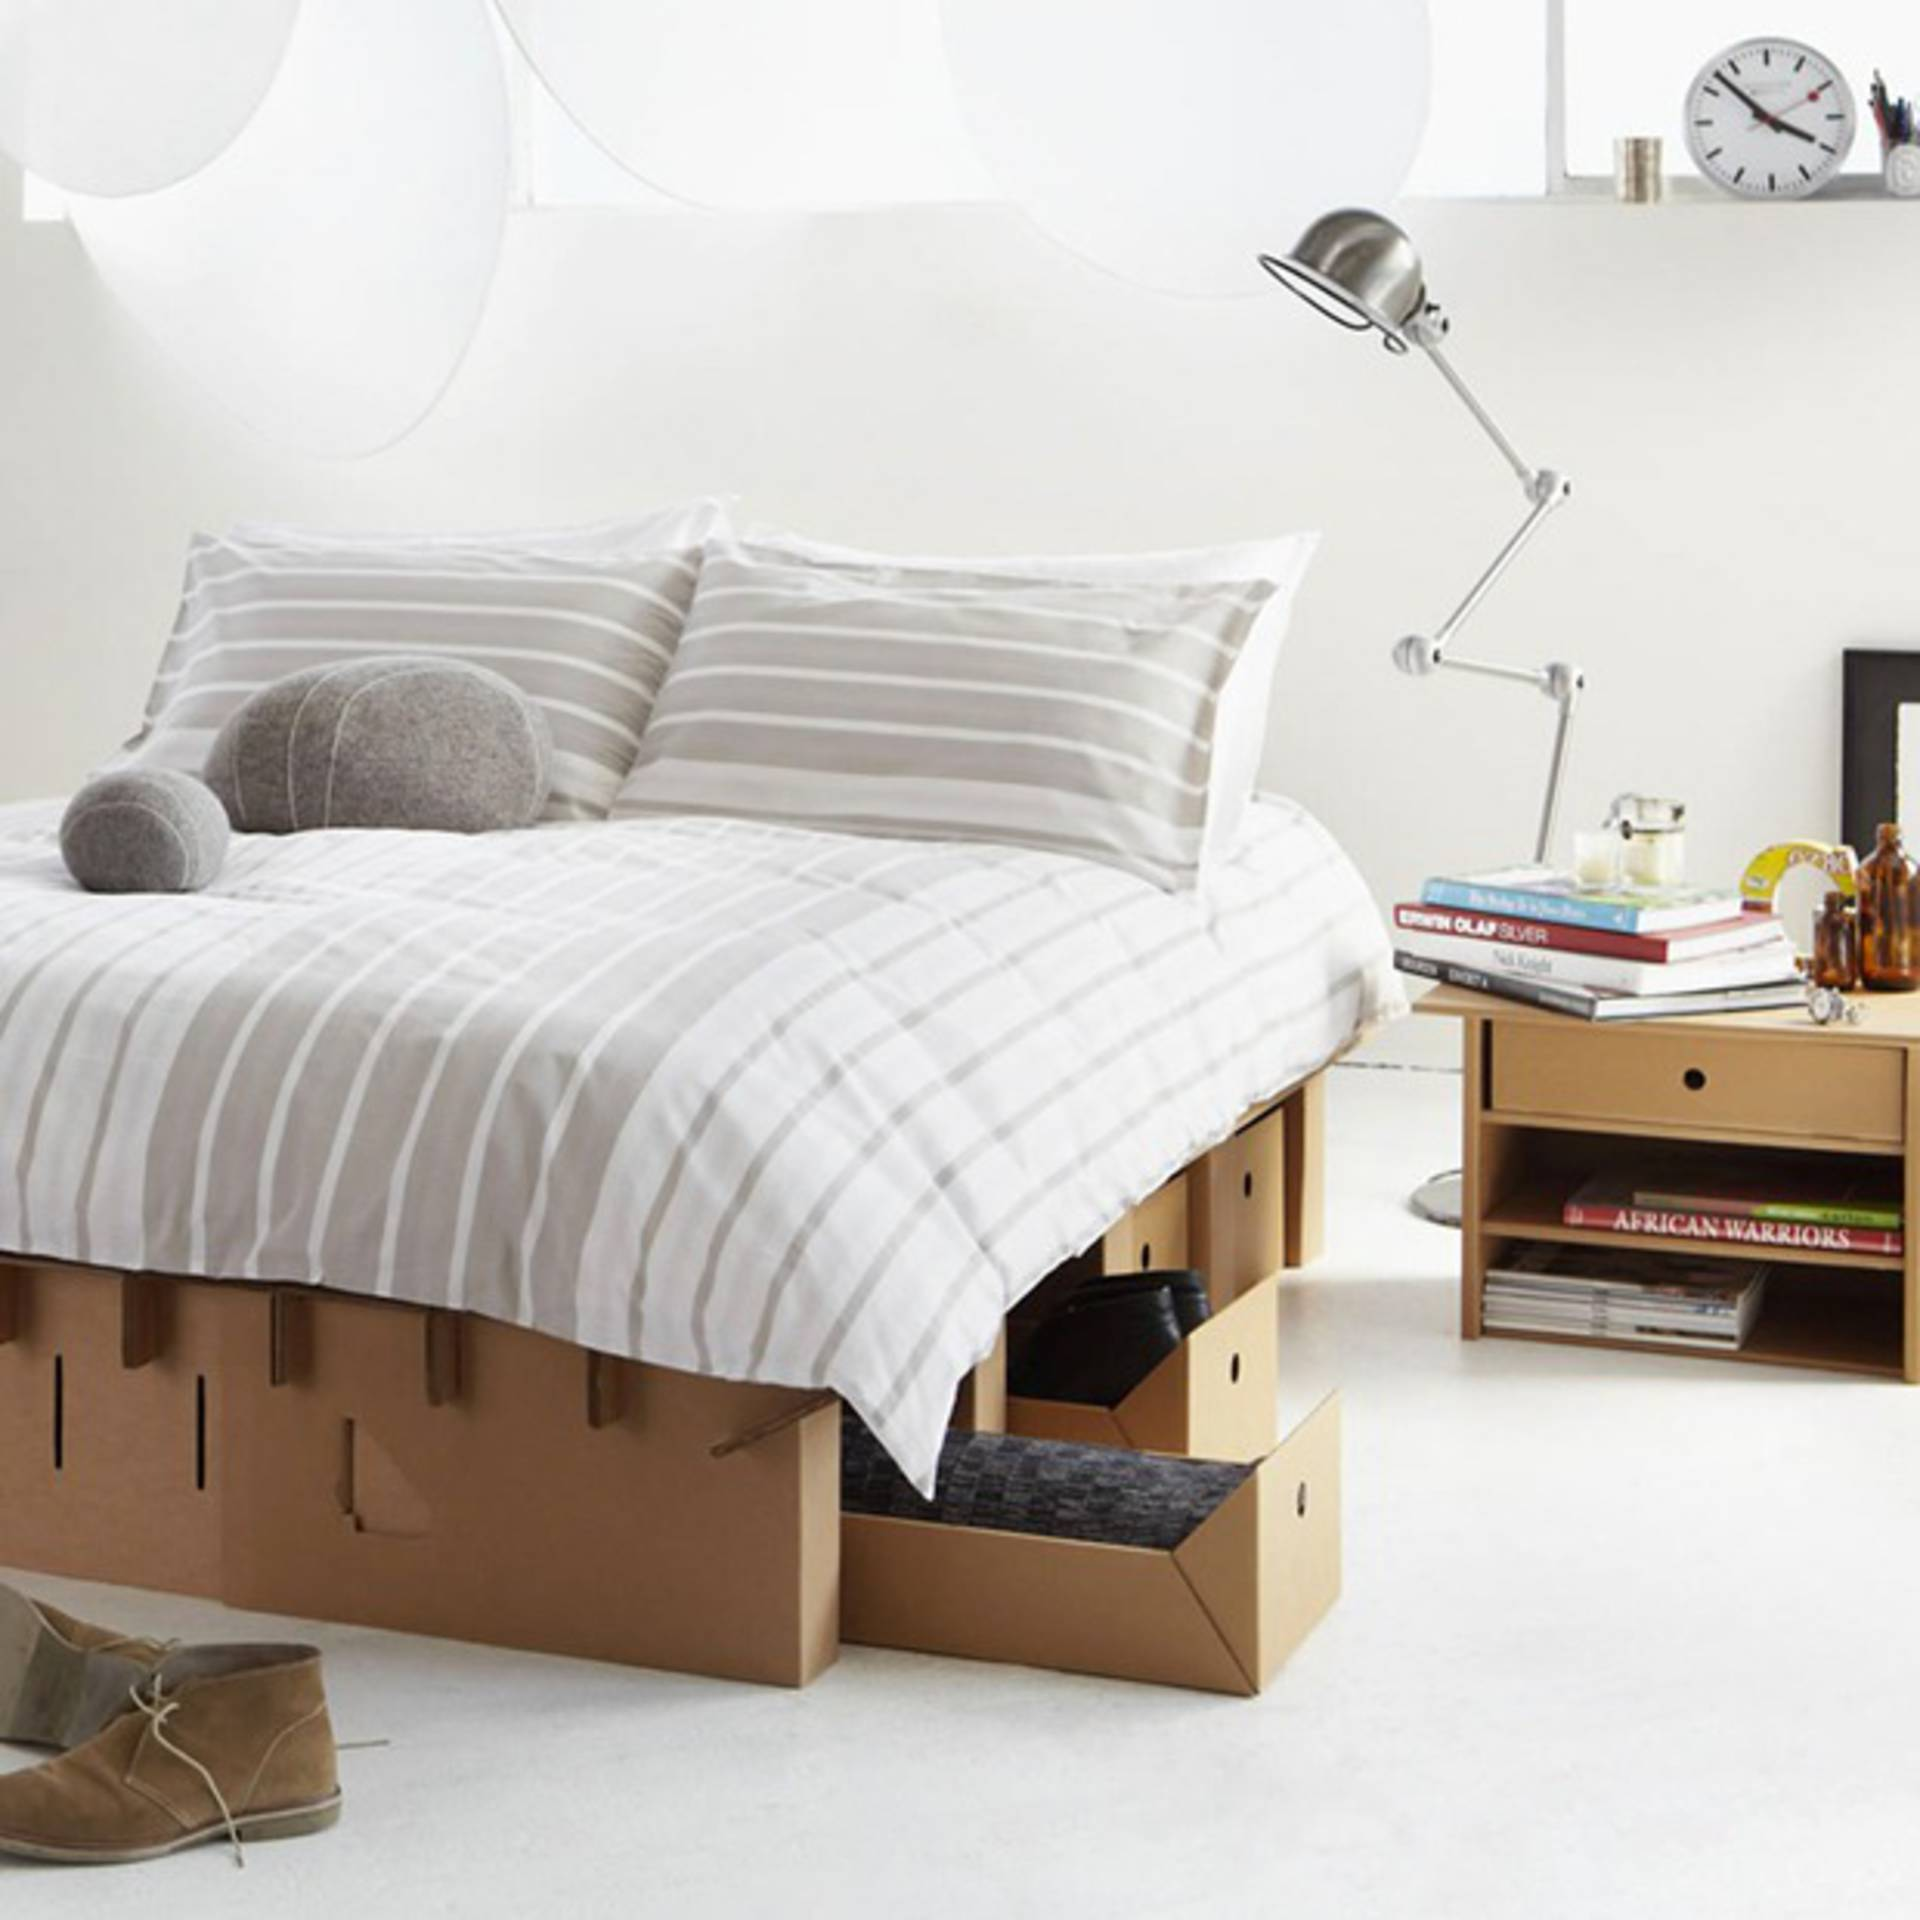 Recycle the cardboard to decorate the House! Here are 15 ideas to ...